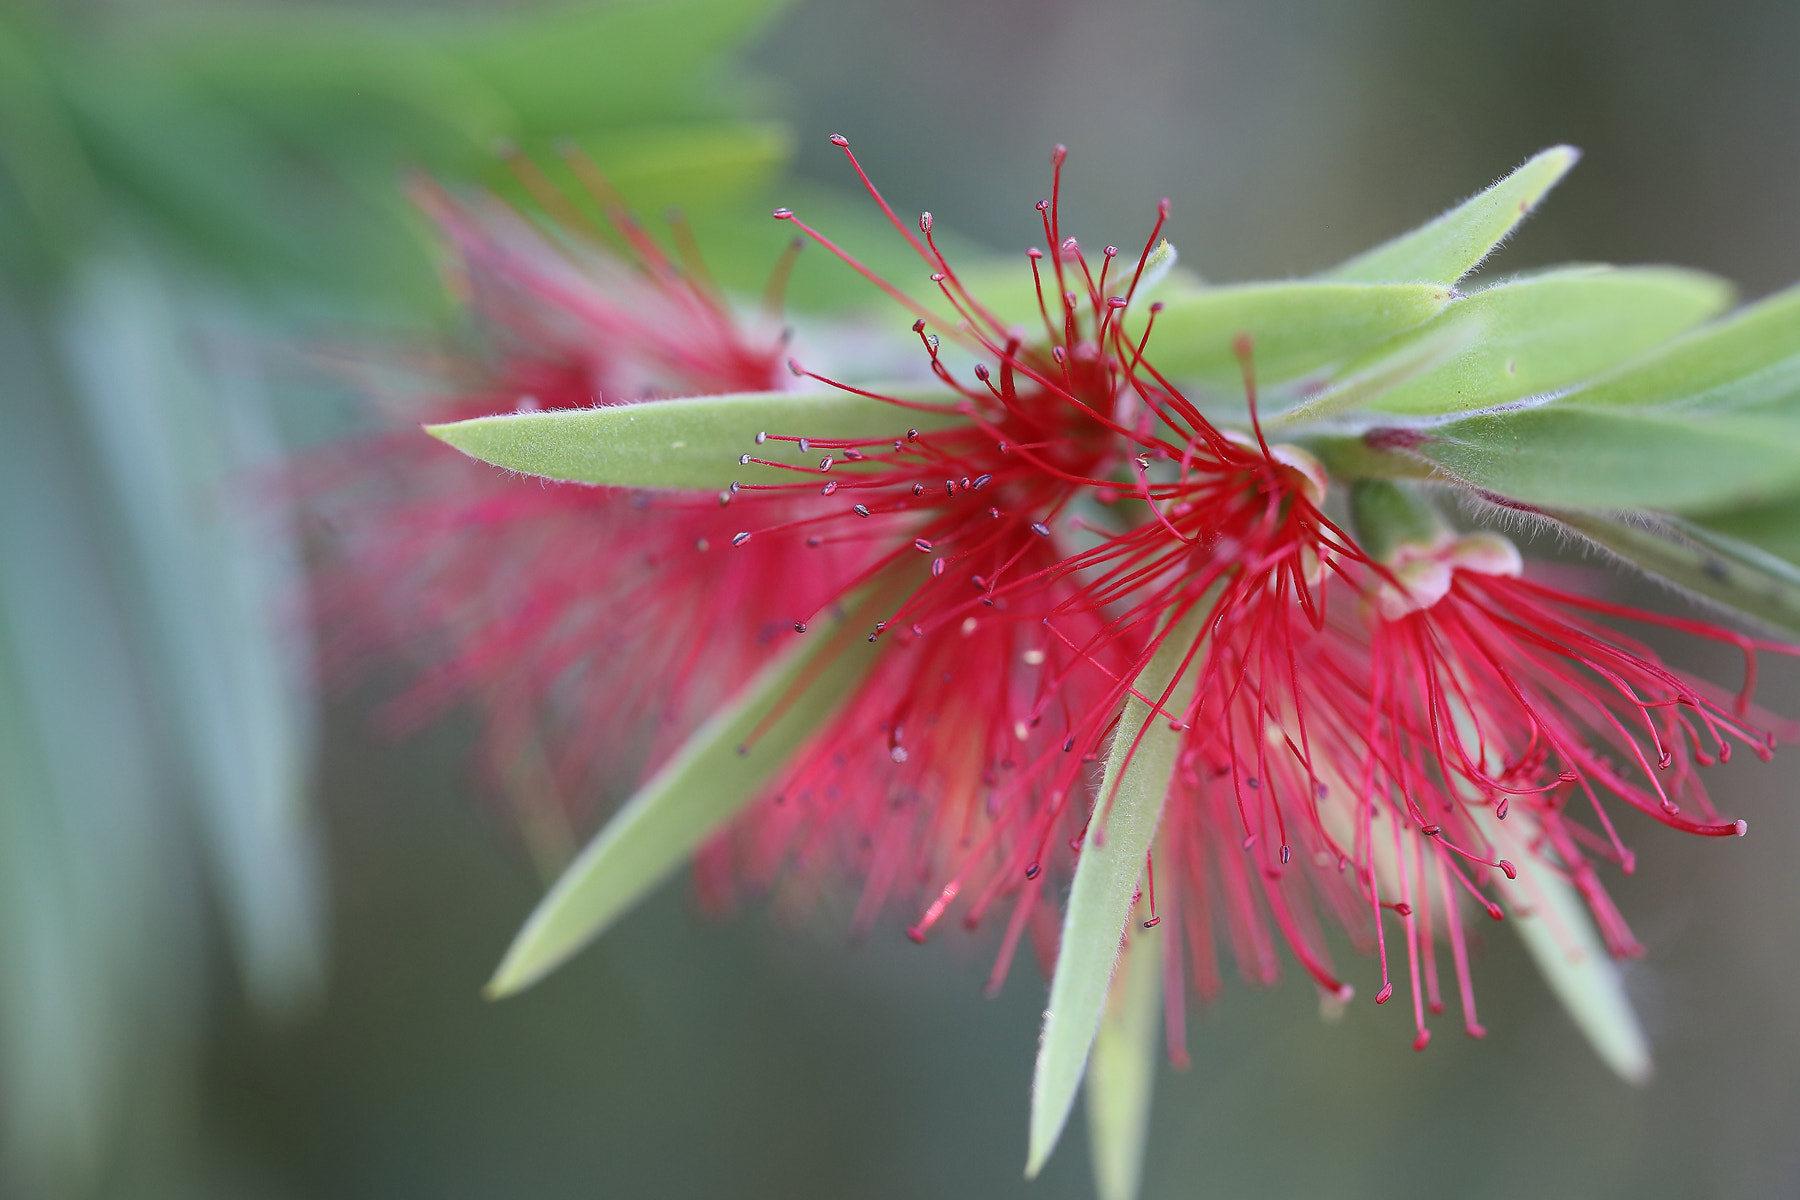 Photograph Bottle Brush Flower by Pieter Oosthuysen on 500px